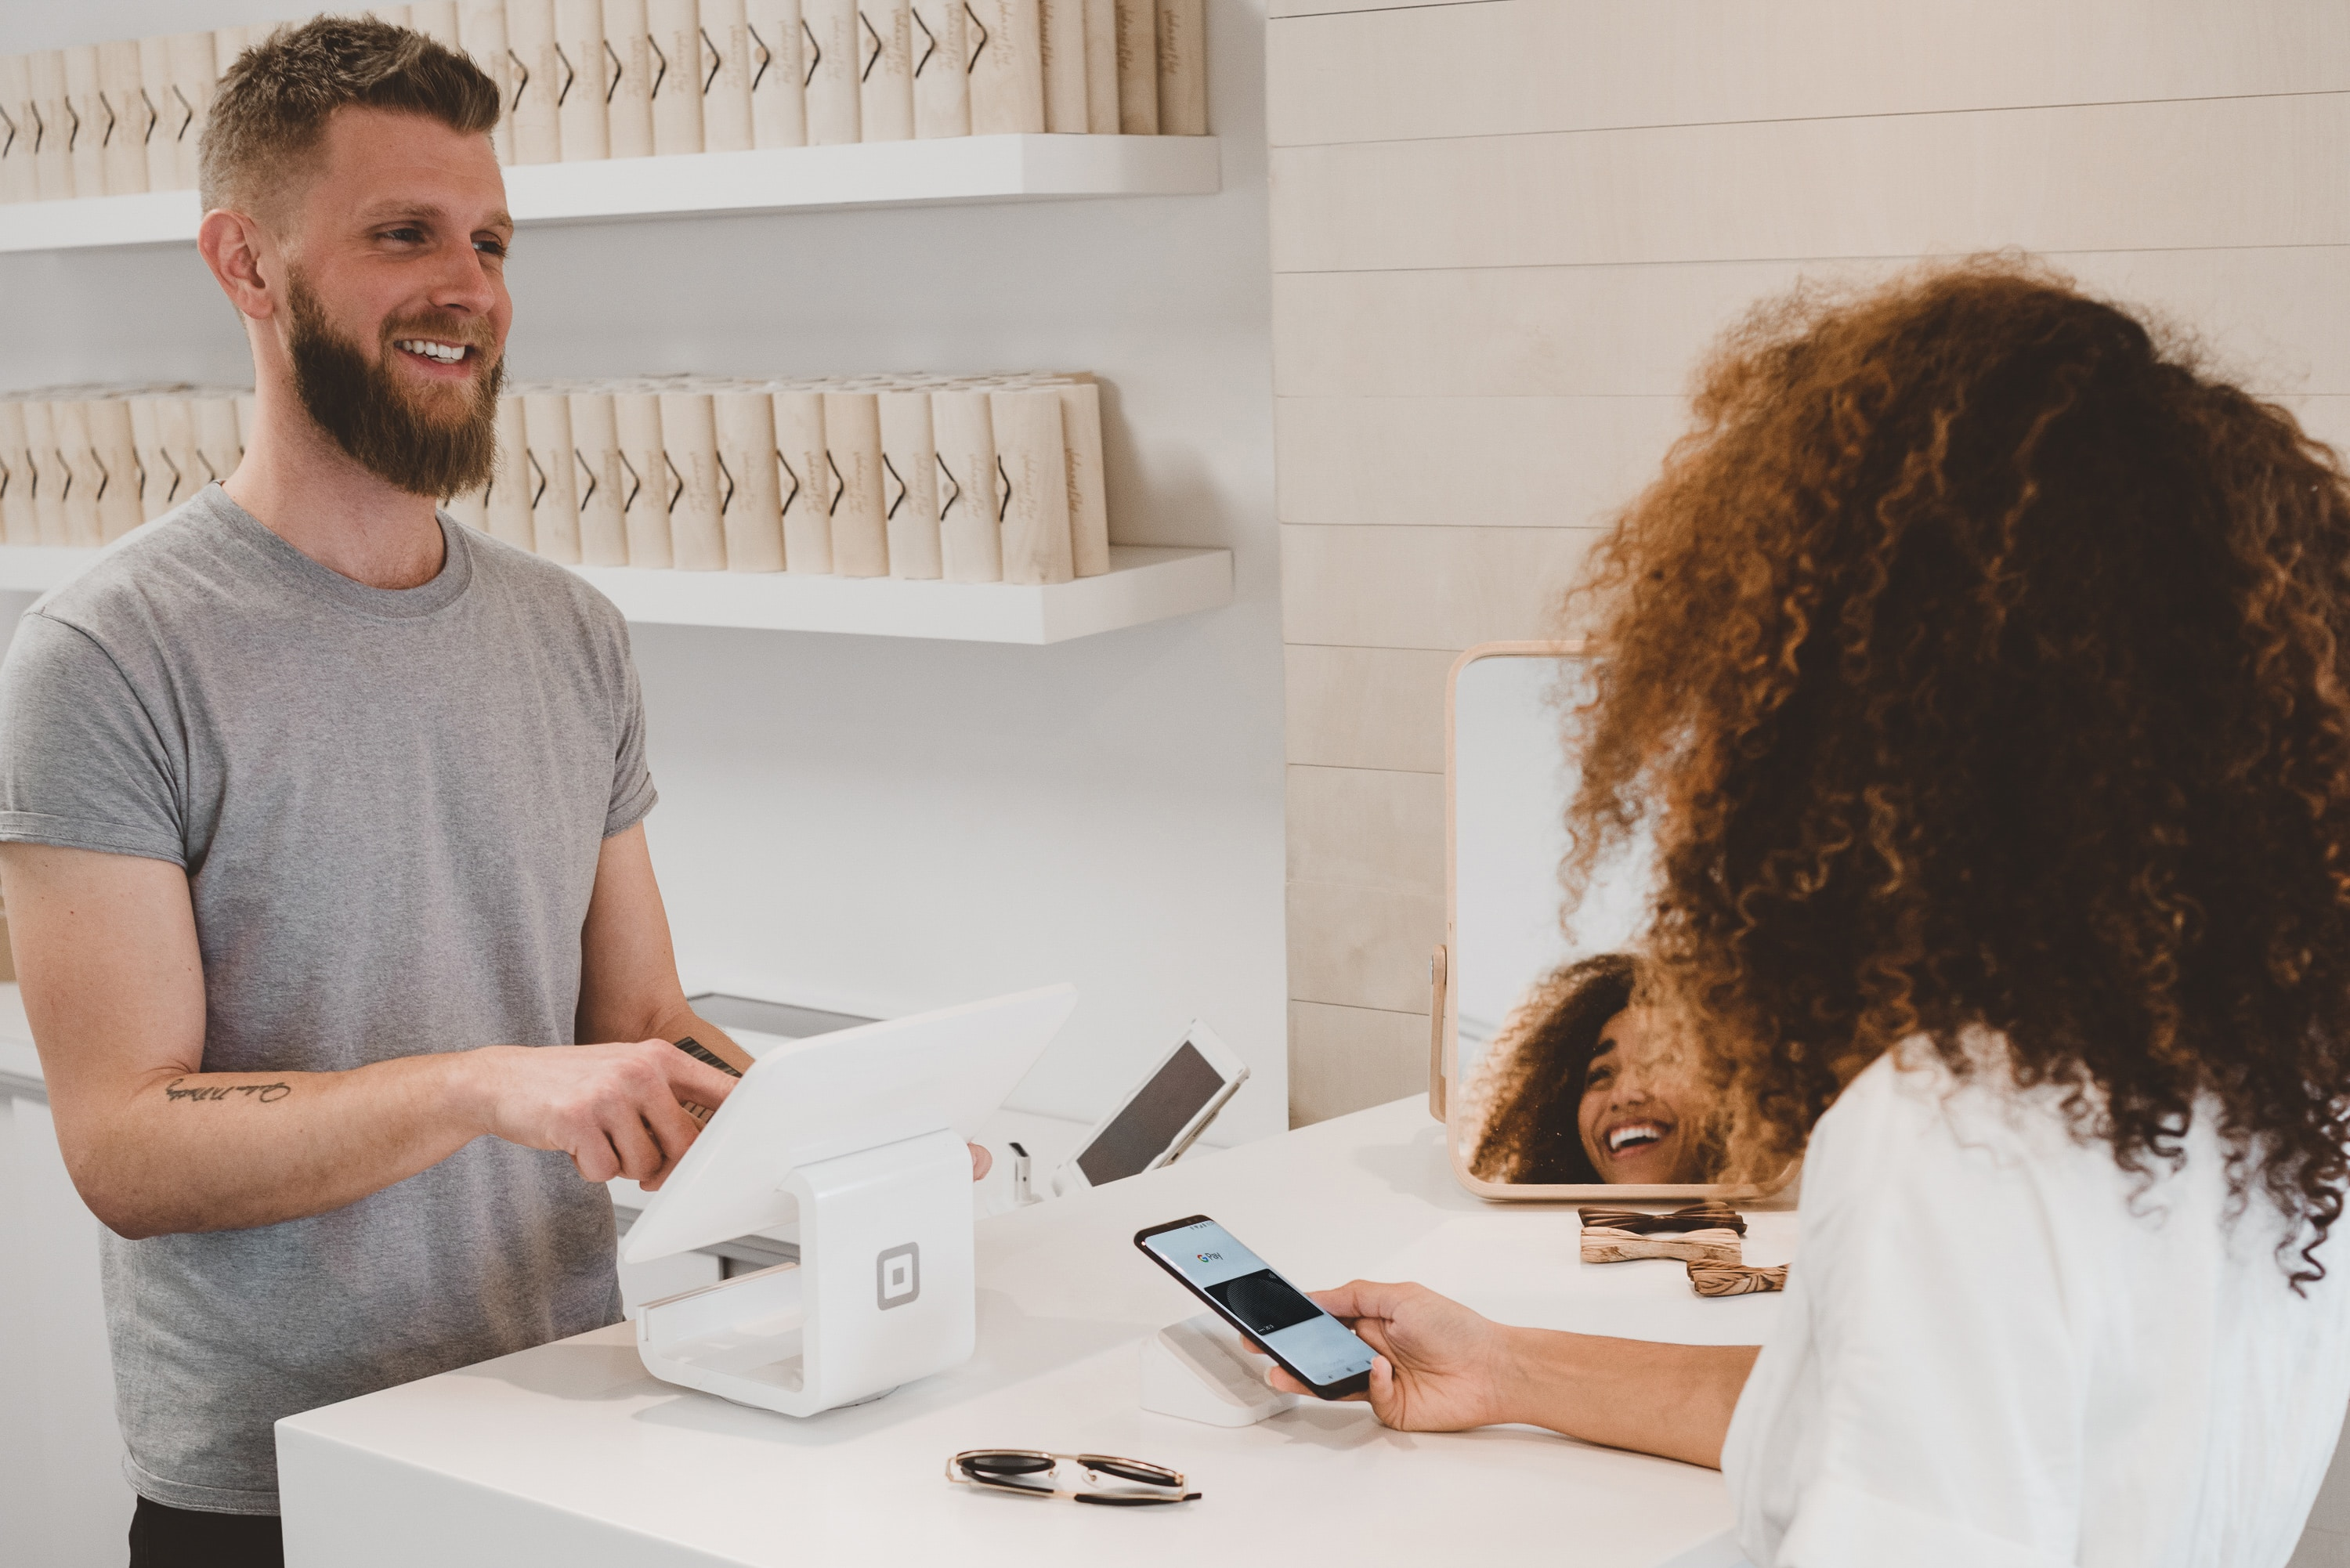 Customer smiling and paying with her phone to a man.